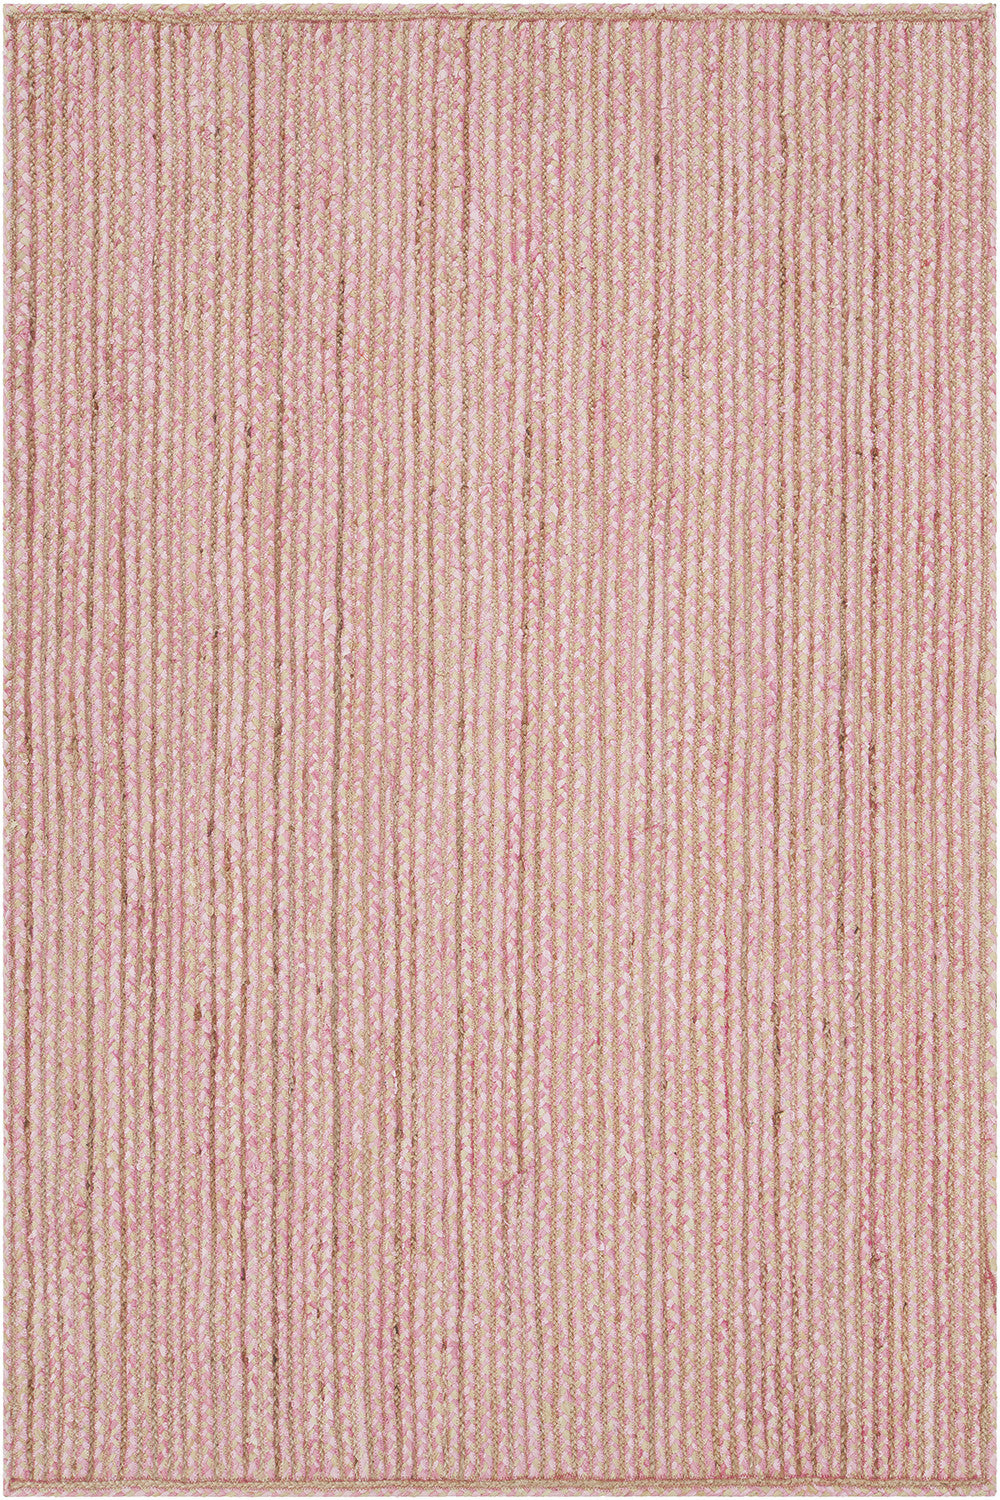 Alyssa Collection Hand Woven Area Rug In Pink U0026 Natural Design By Chandra  Rugs